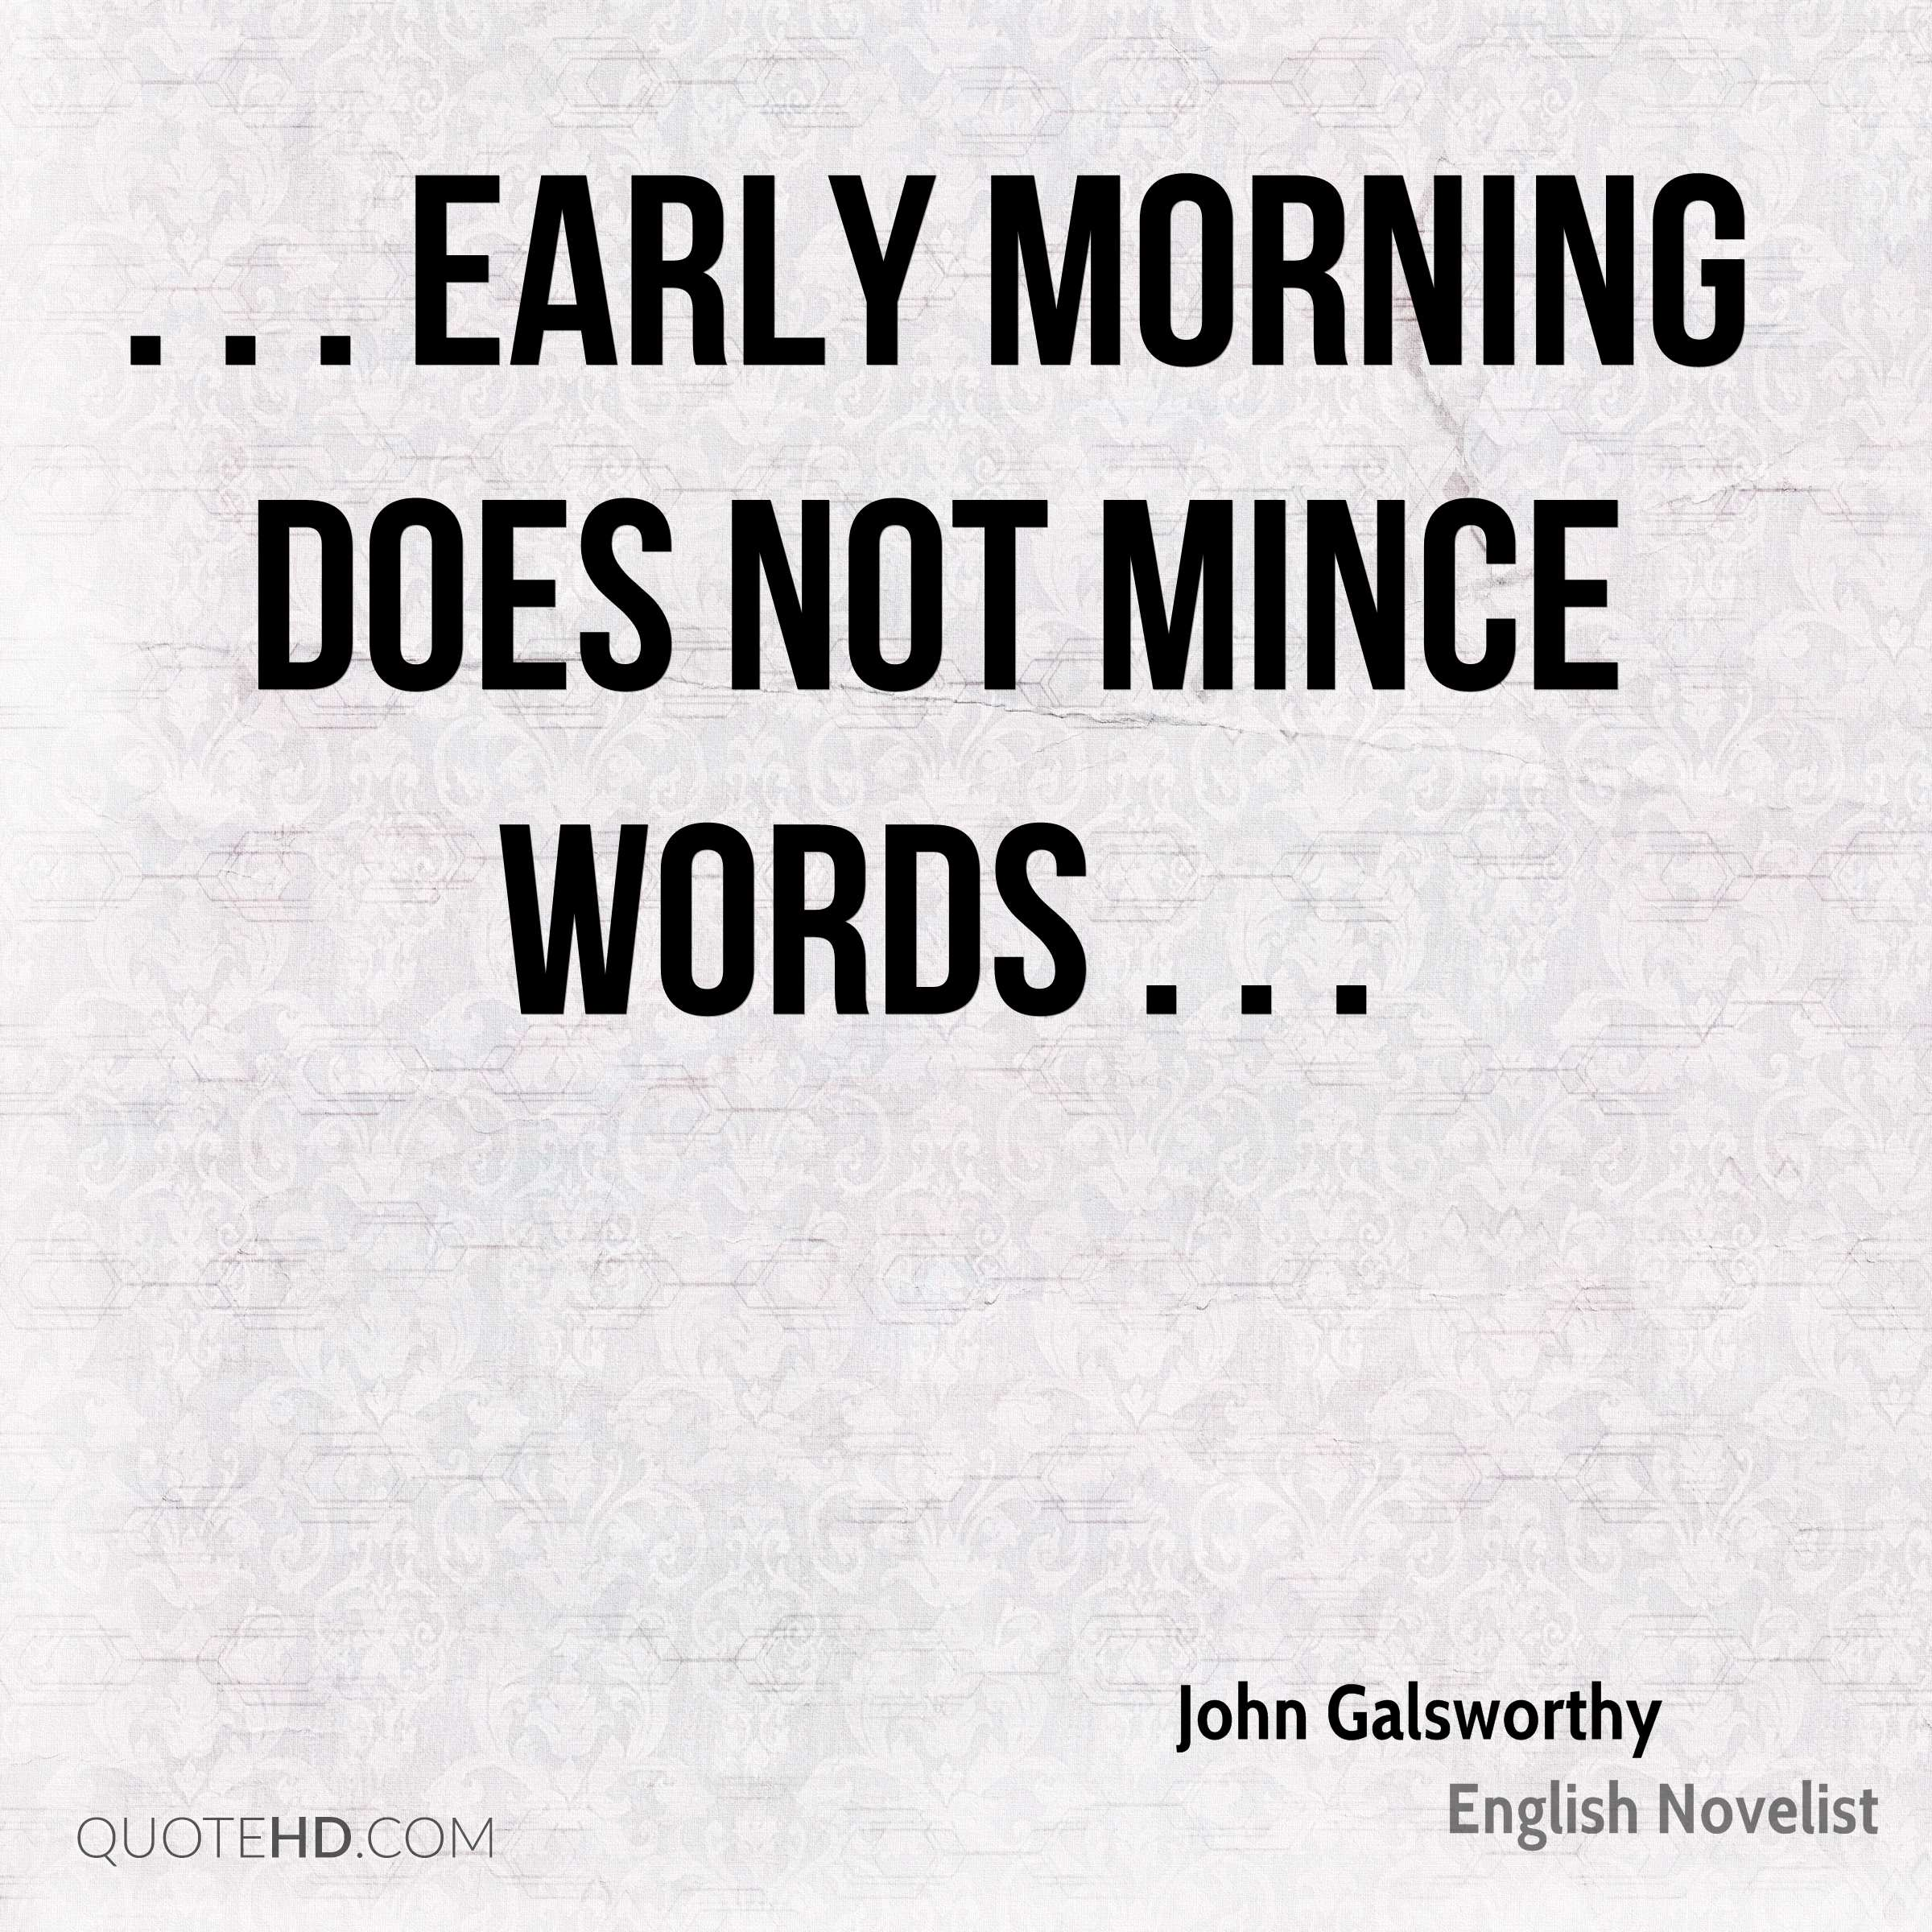 . . . early morning does not mince words . . .